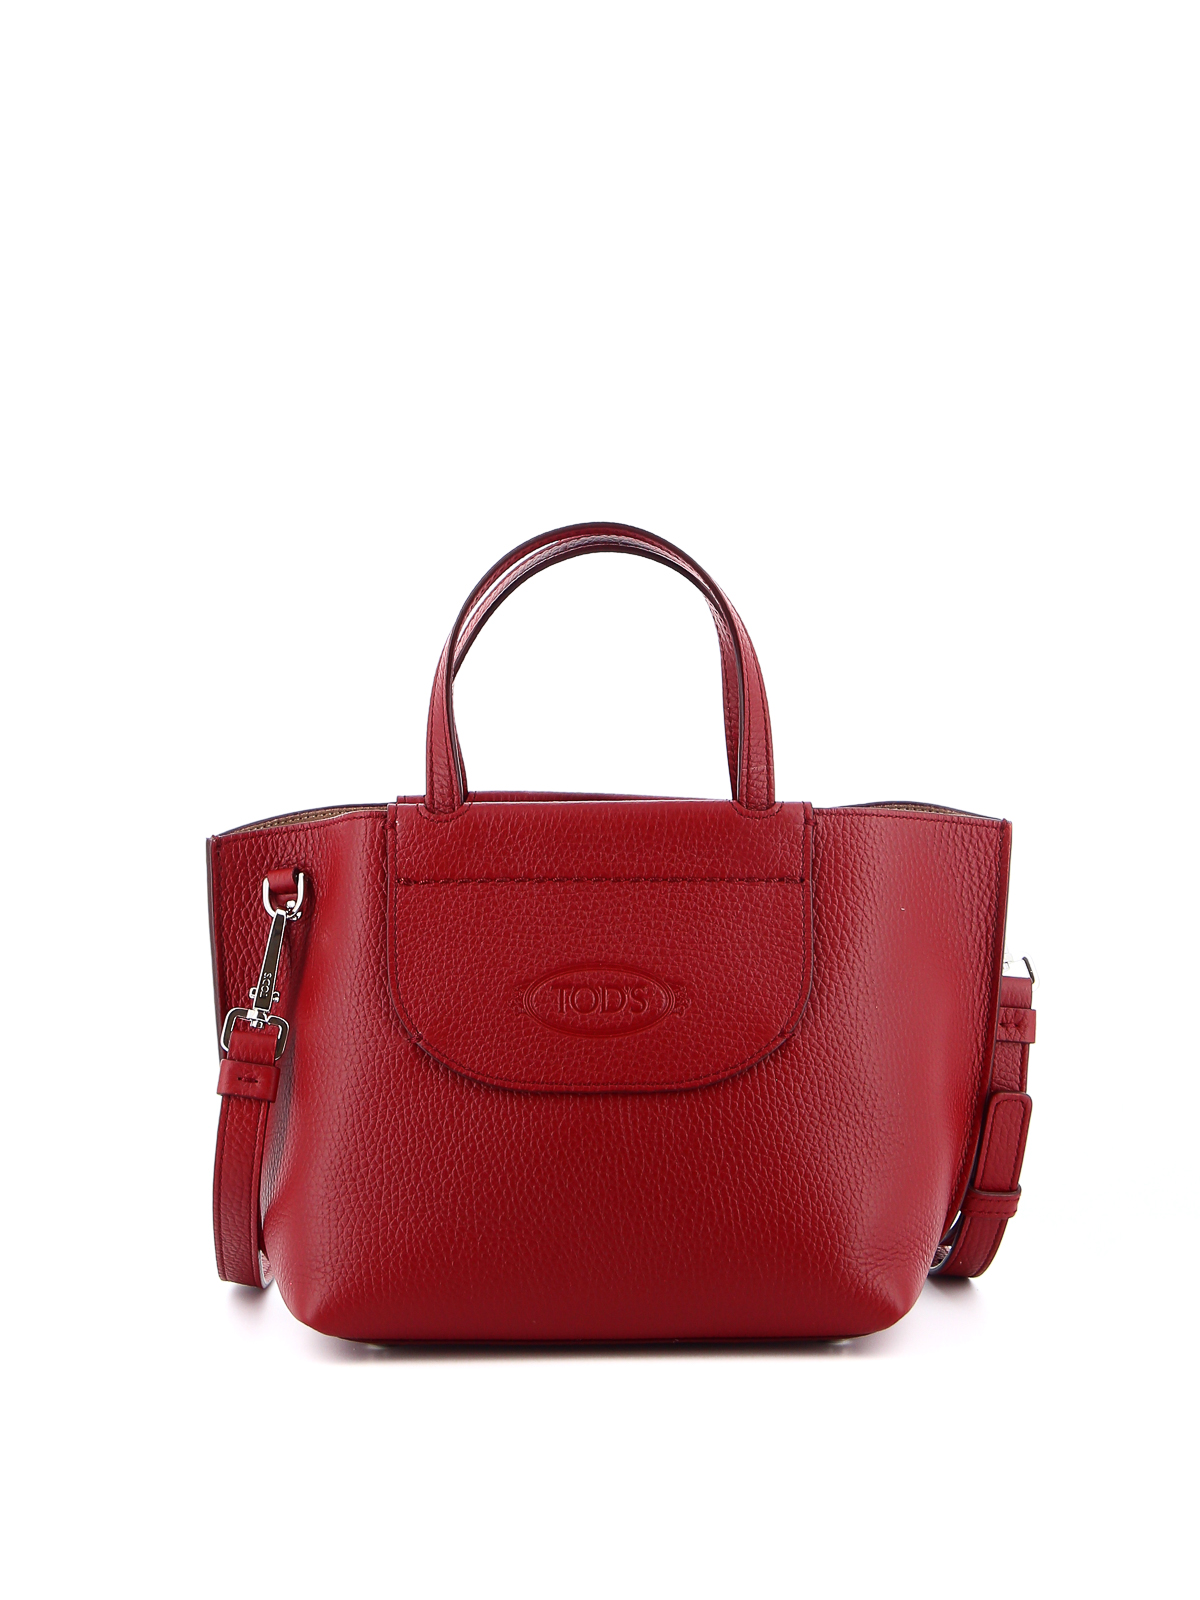 Tod's EMBOSSED LOGO HAMMERED LEATHER MINI BAG